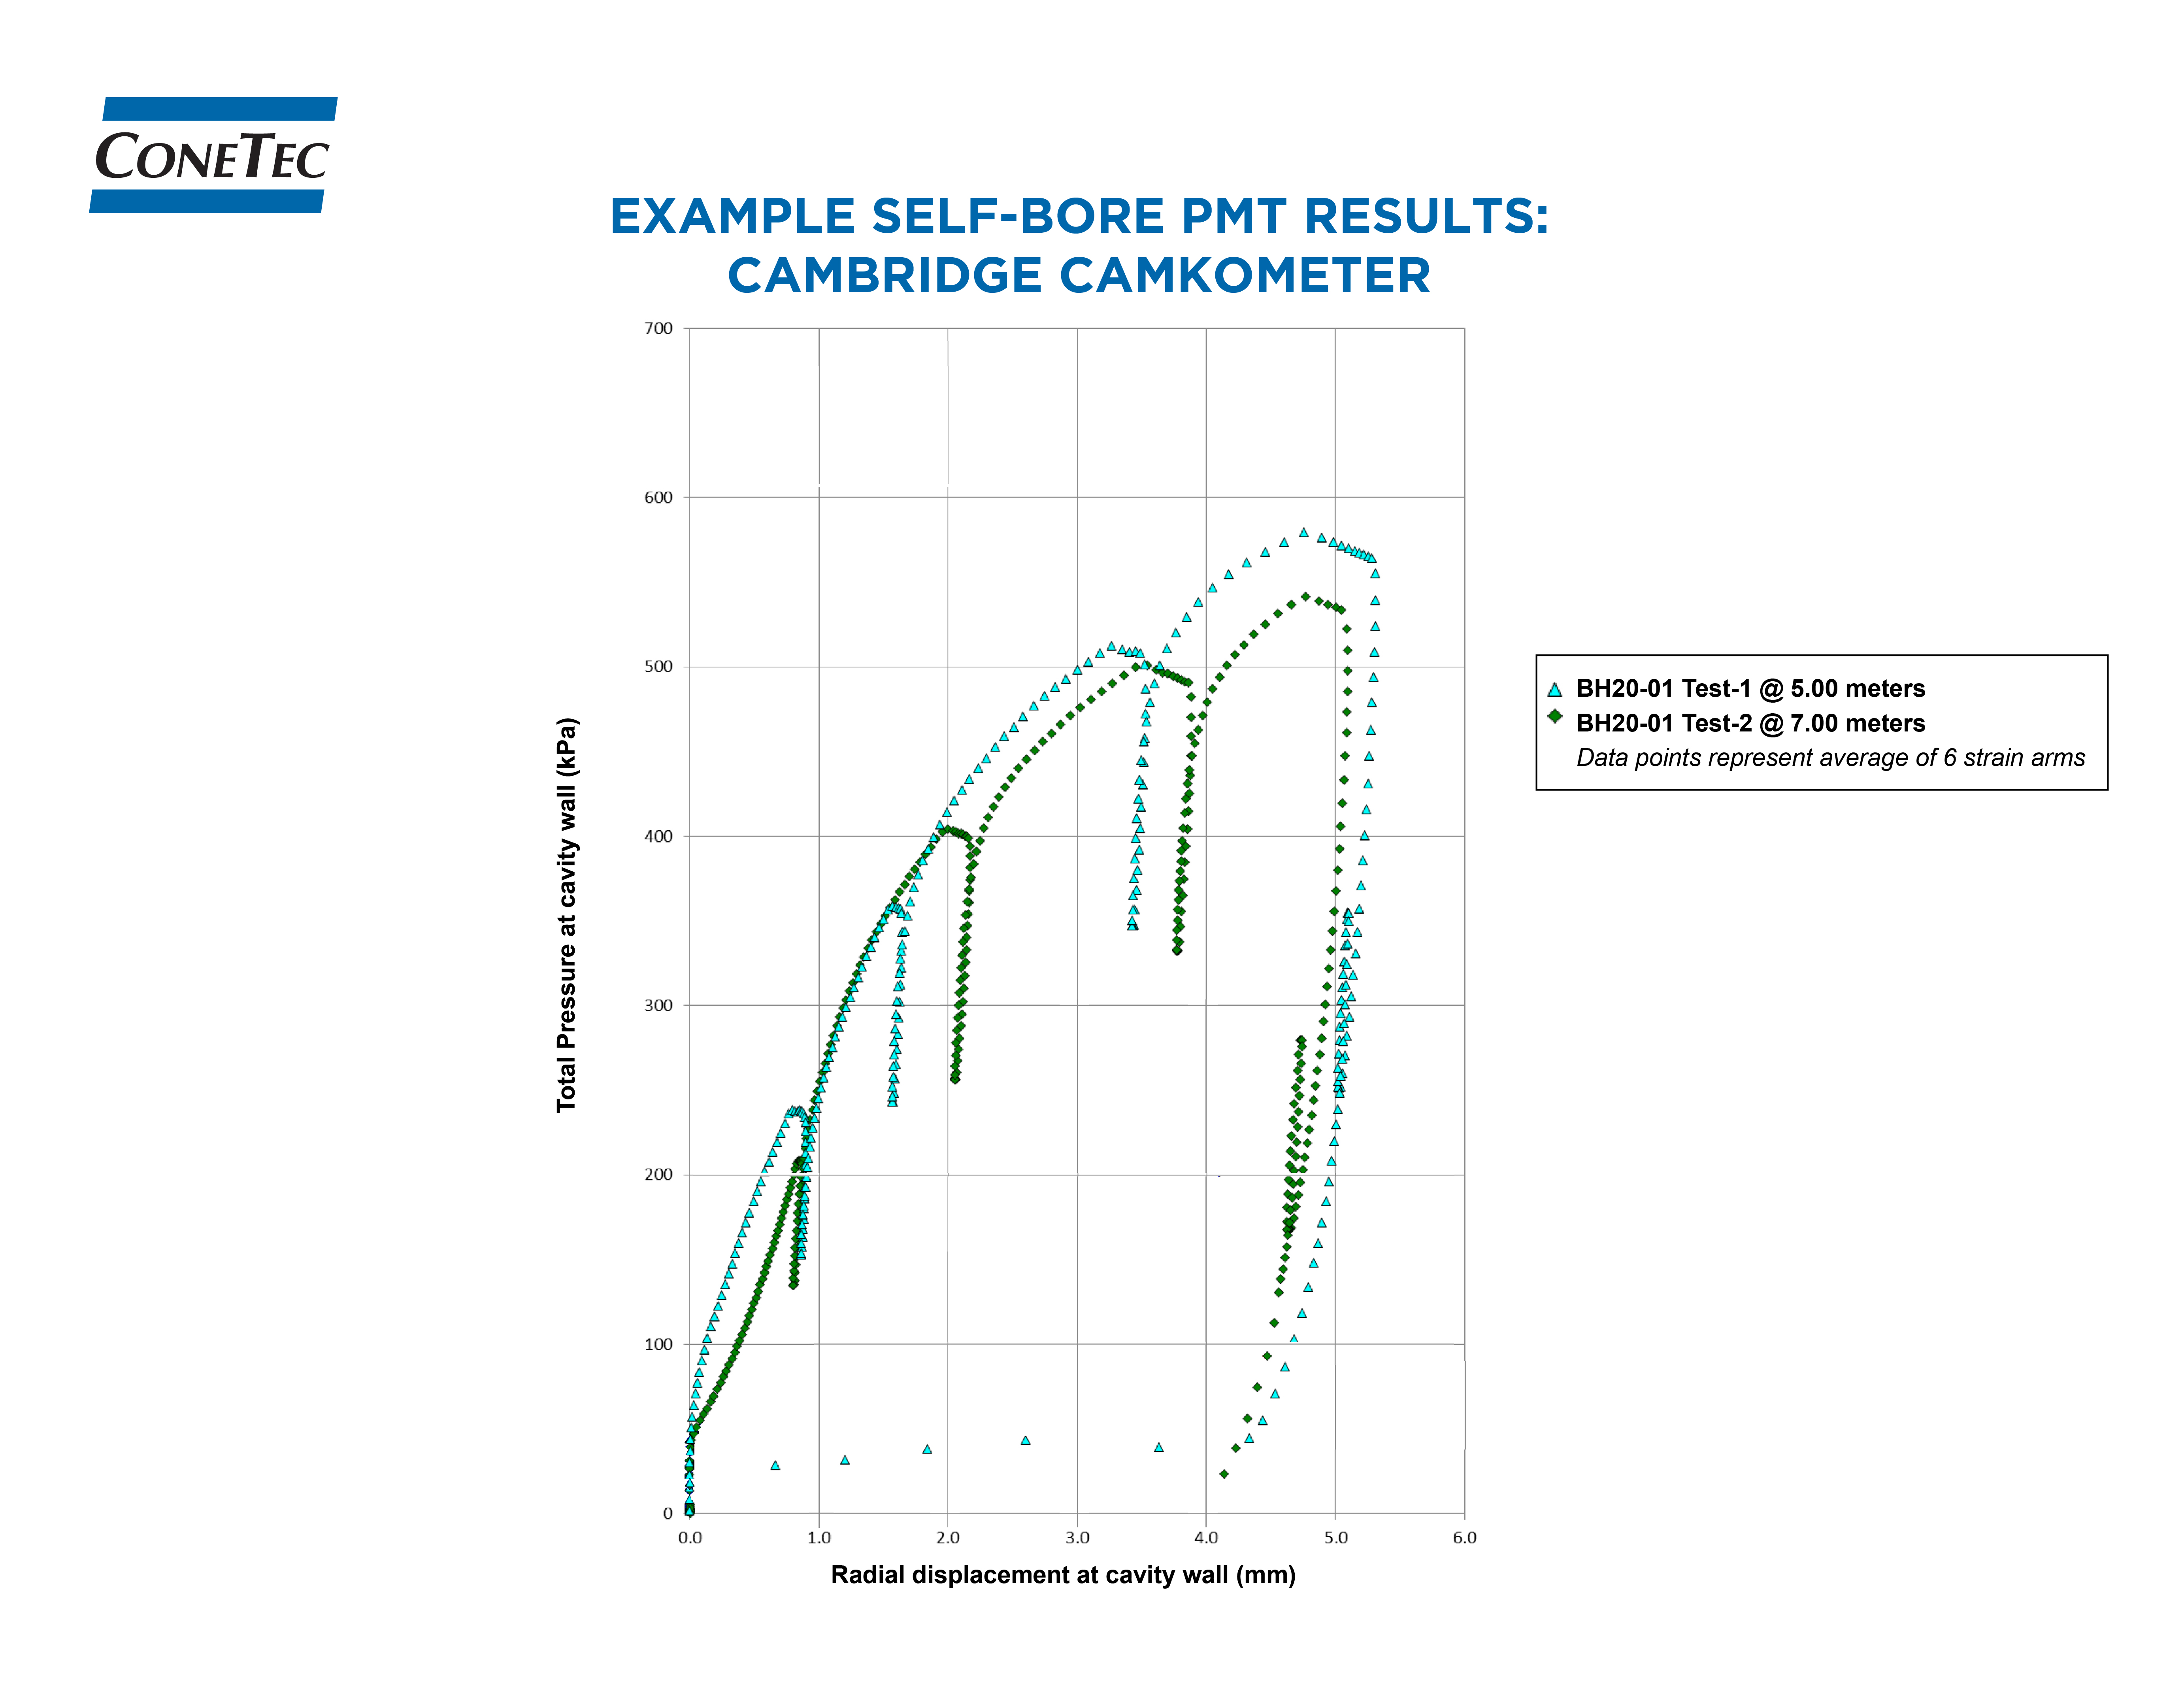 Figures and Data 1 - Example Pre-Bore PMT Results - Cambridge Camkometer-01-01.jpg